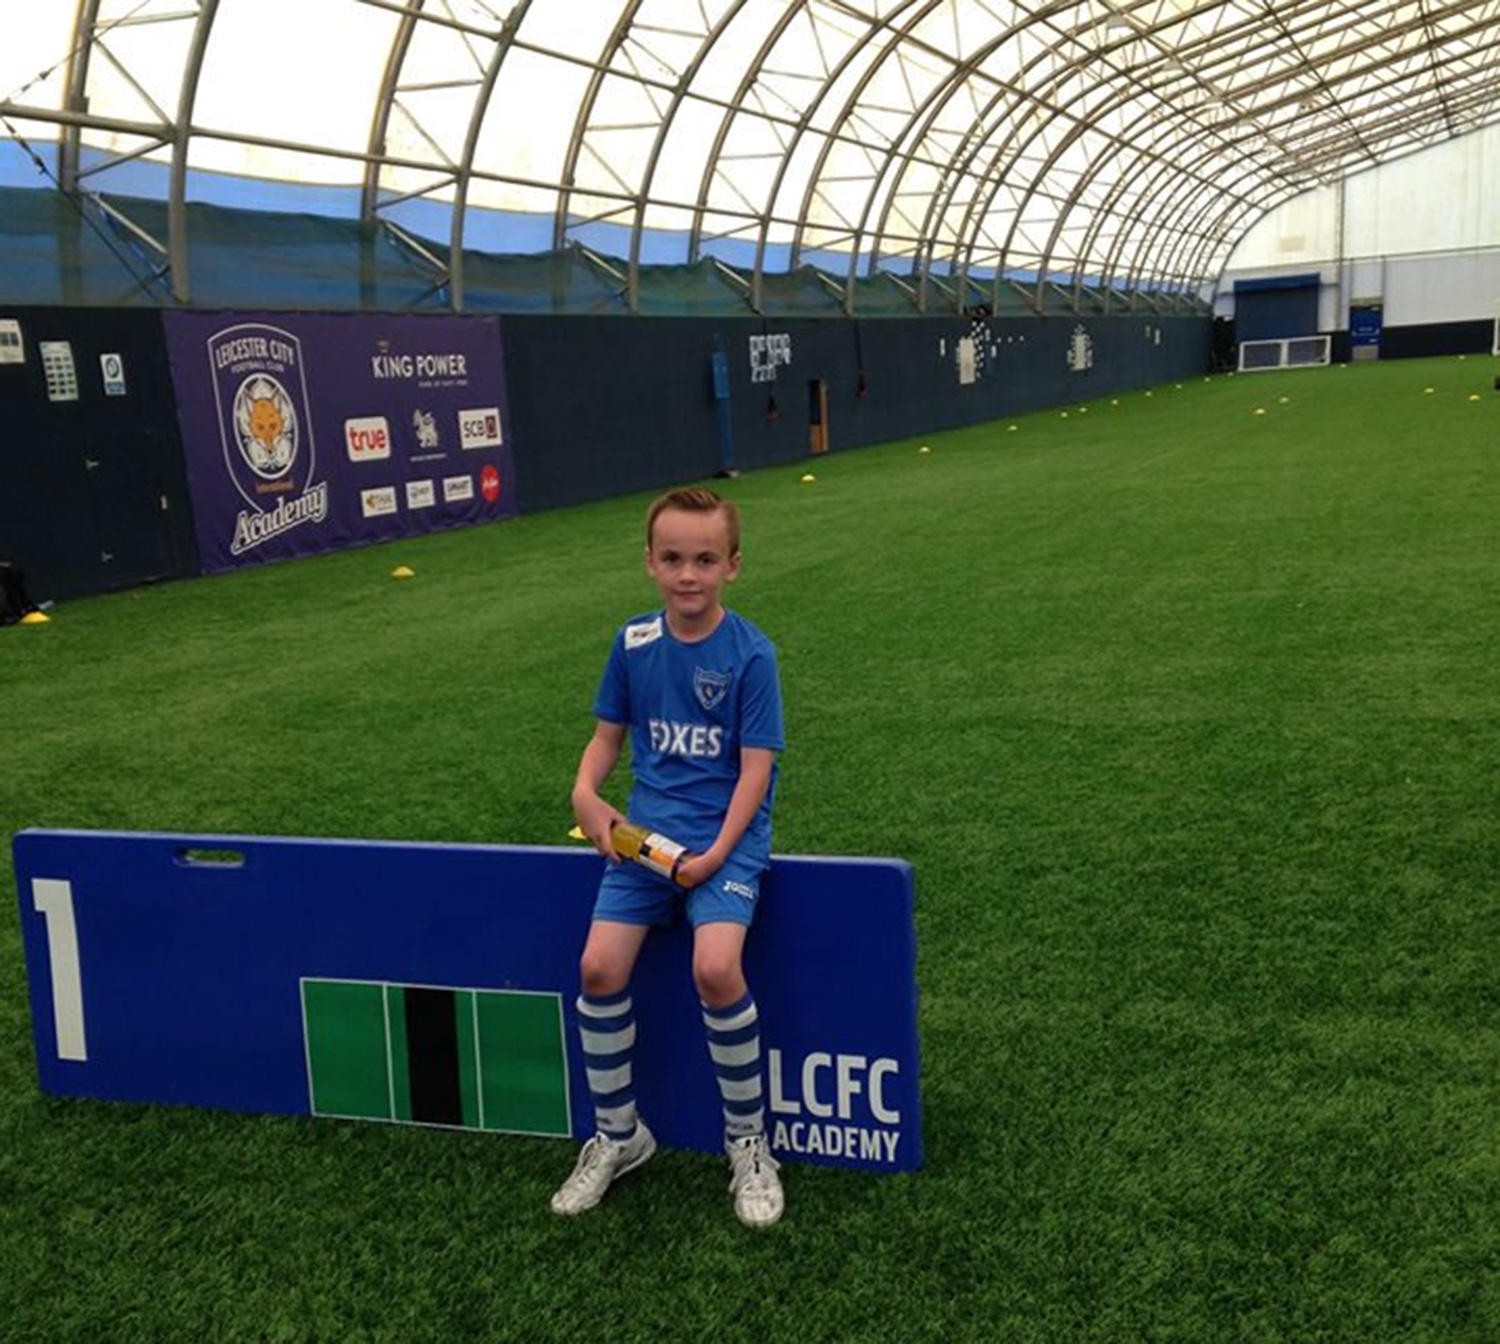 ROBOTIC HAND COULD HELP BOY BECOME UK'S FIRST DISABLED FOOTBALLER